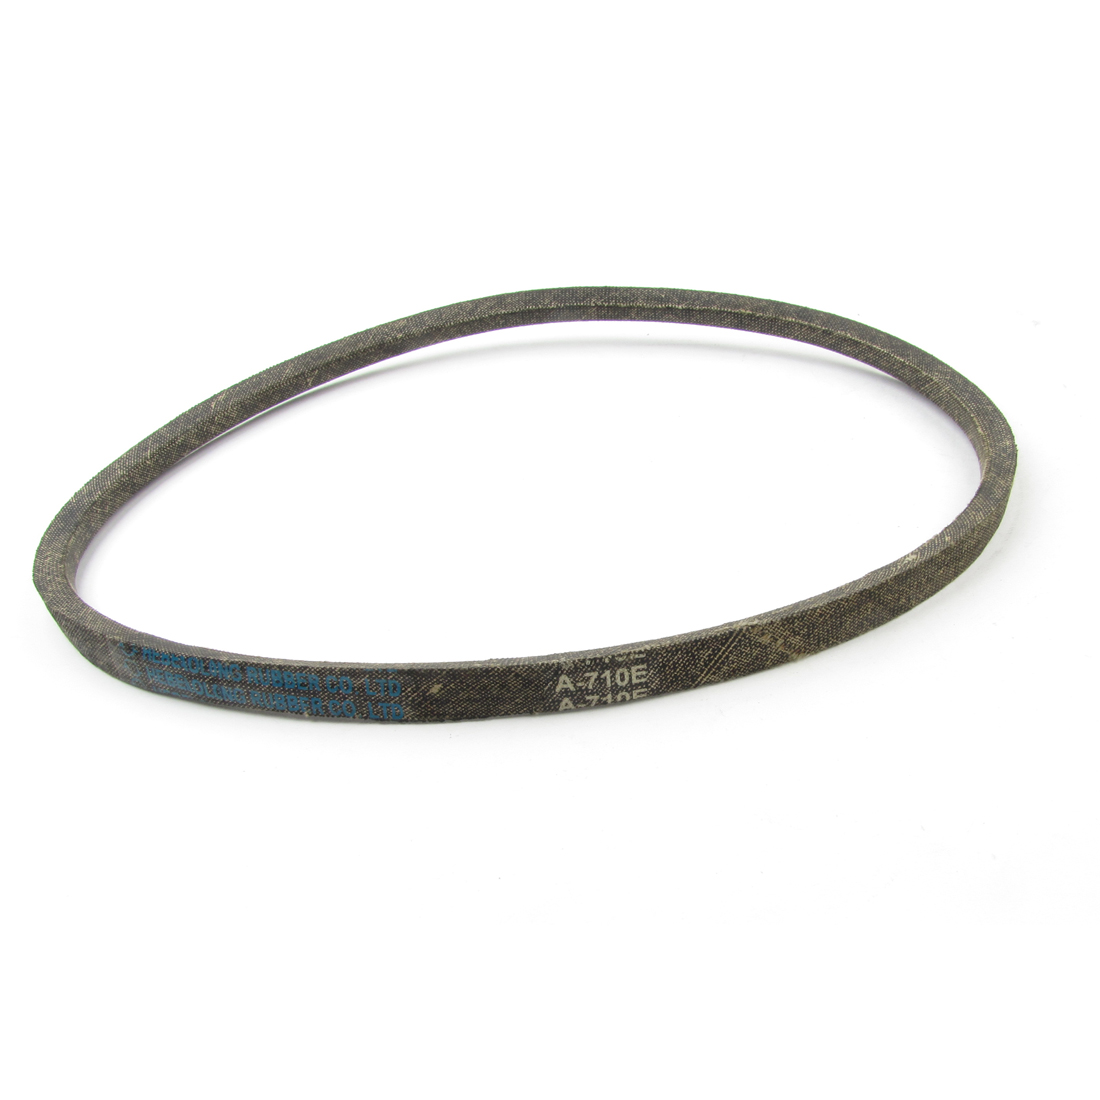 "Rubber Washing Machine Drive Belt Repair Part A-710E 71cm 27 7/8"" Inner Girth"